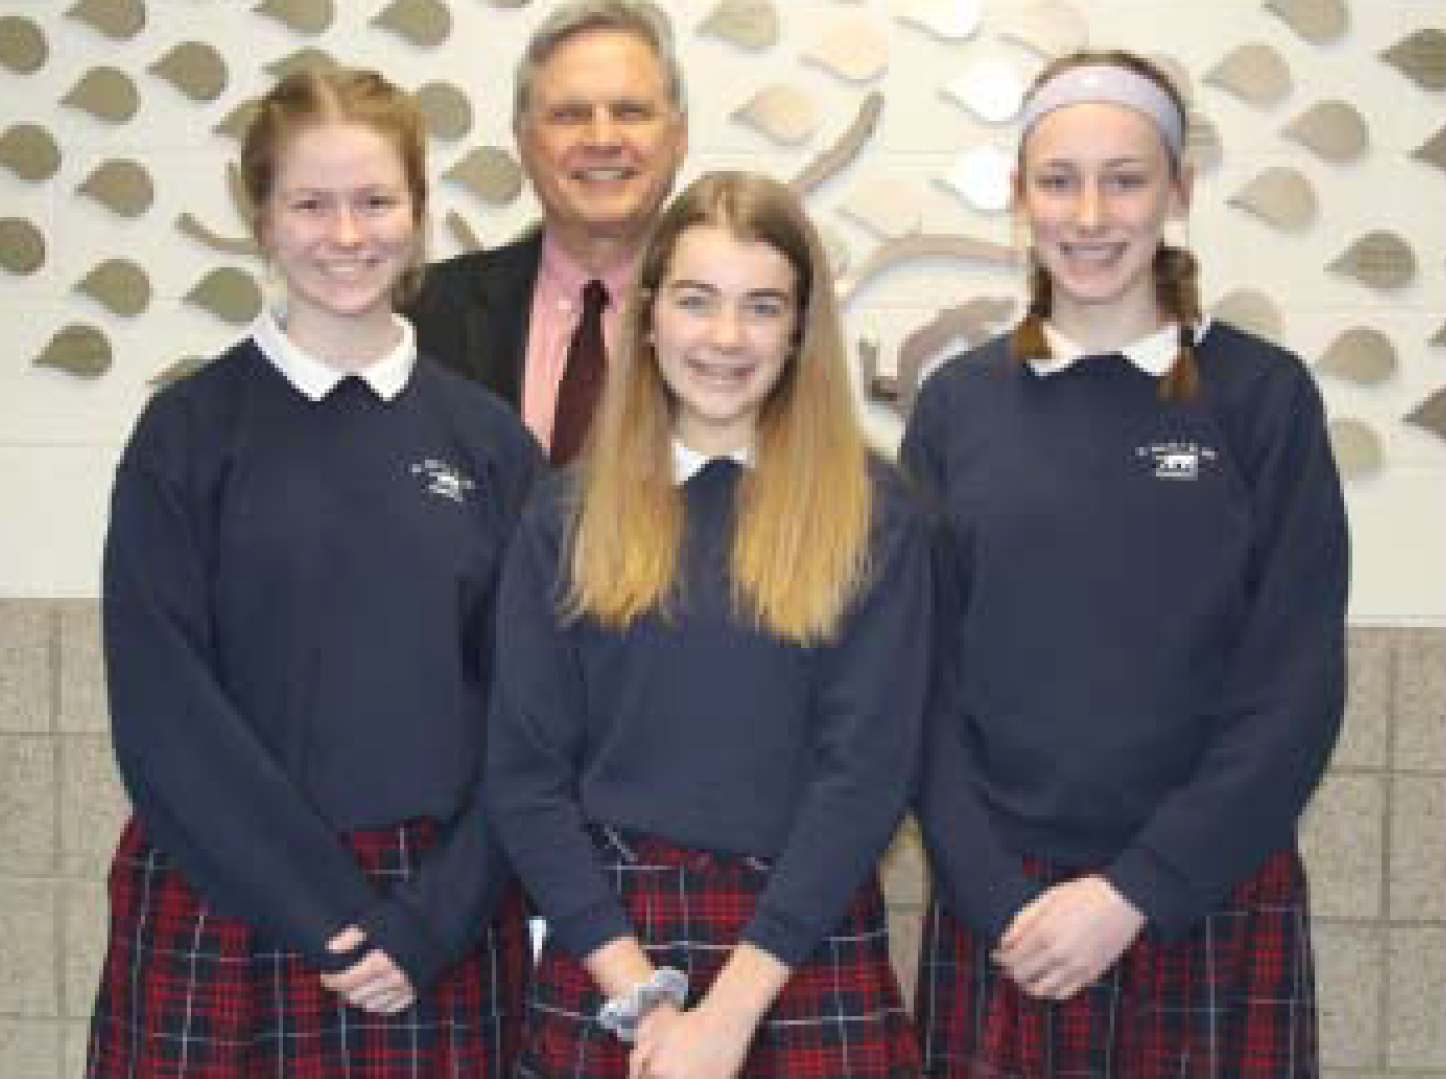 Judges selected, from left, Meg Raabe, Second Place; Gigi Salerno, First Place; and Abby Wessling, Third Place in the Essay Contest. All three are students of Greg Gorske, history teacher at St. Pius/St. Leo. (Photo by Lorraine Boyd)